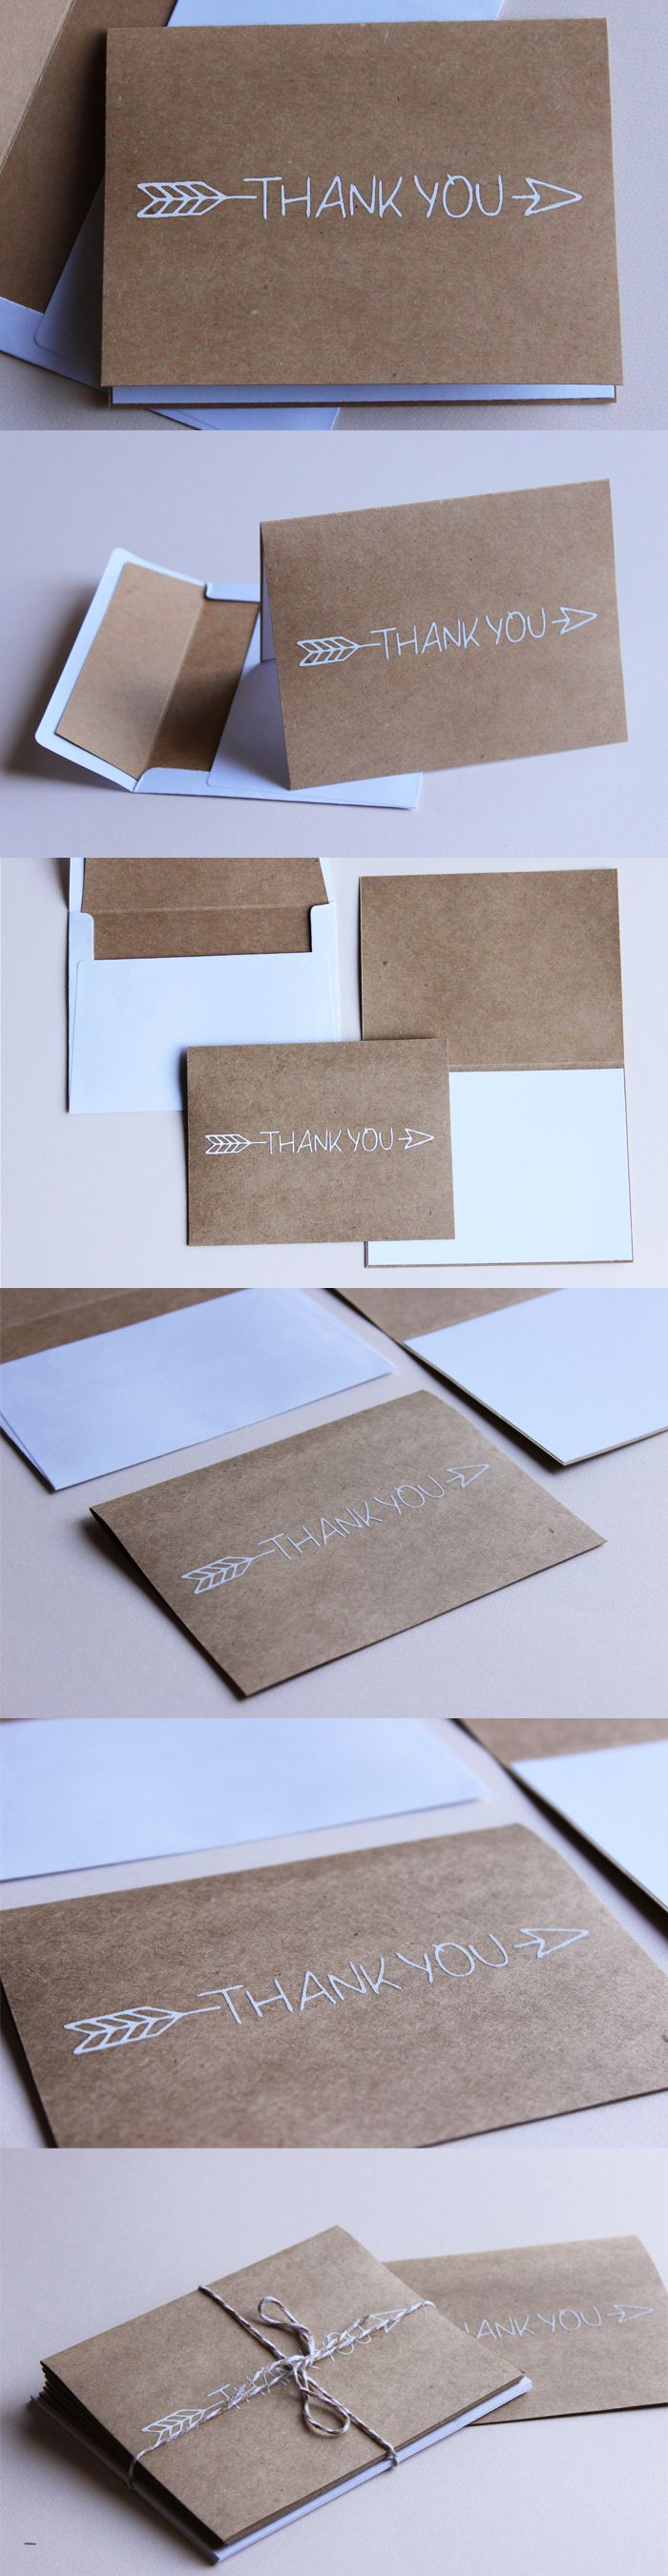 23 best Thank You Cards images on Pinterest | Appreciation cards ...